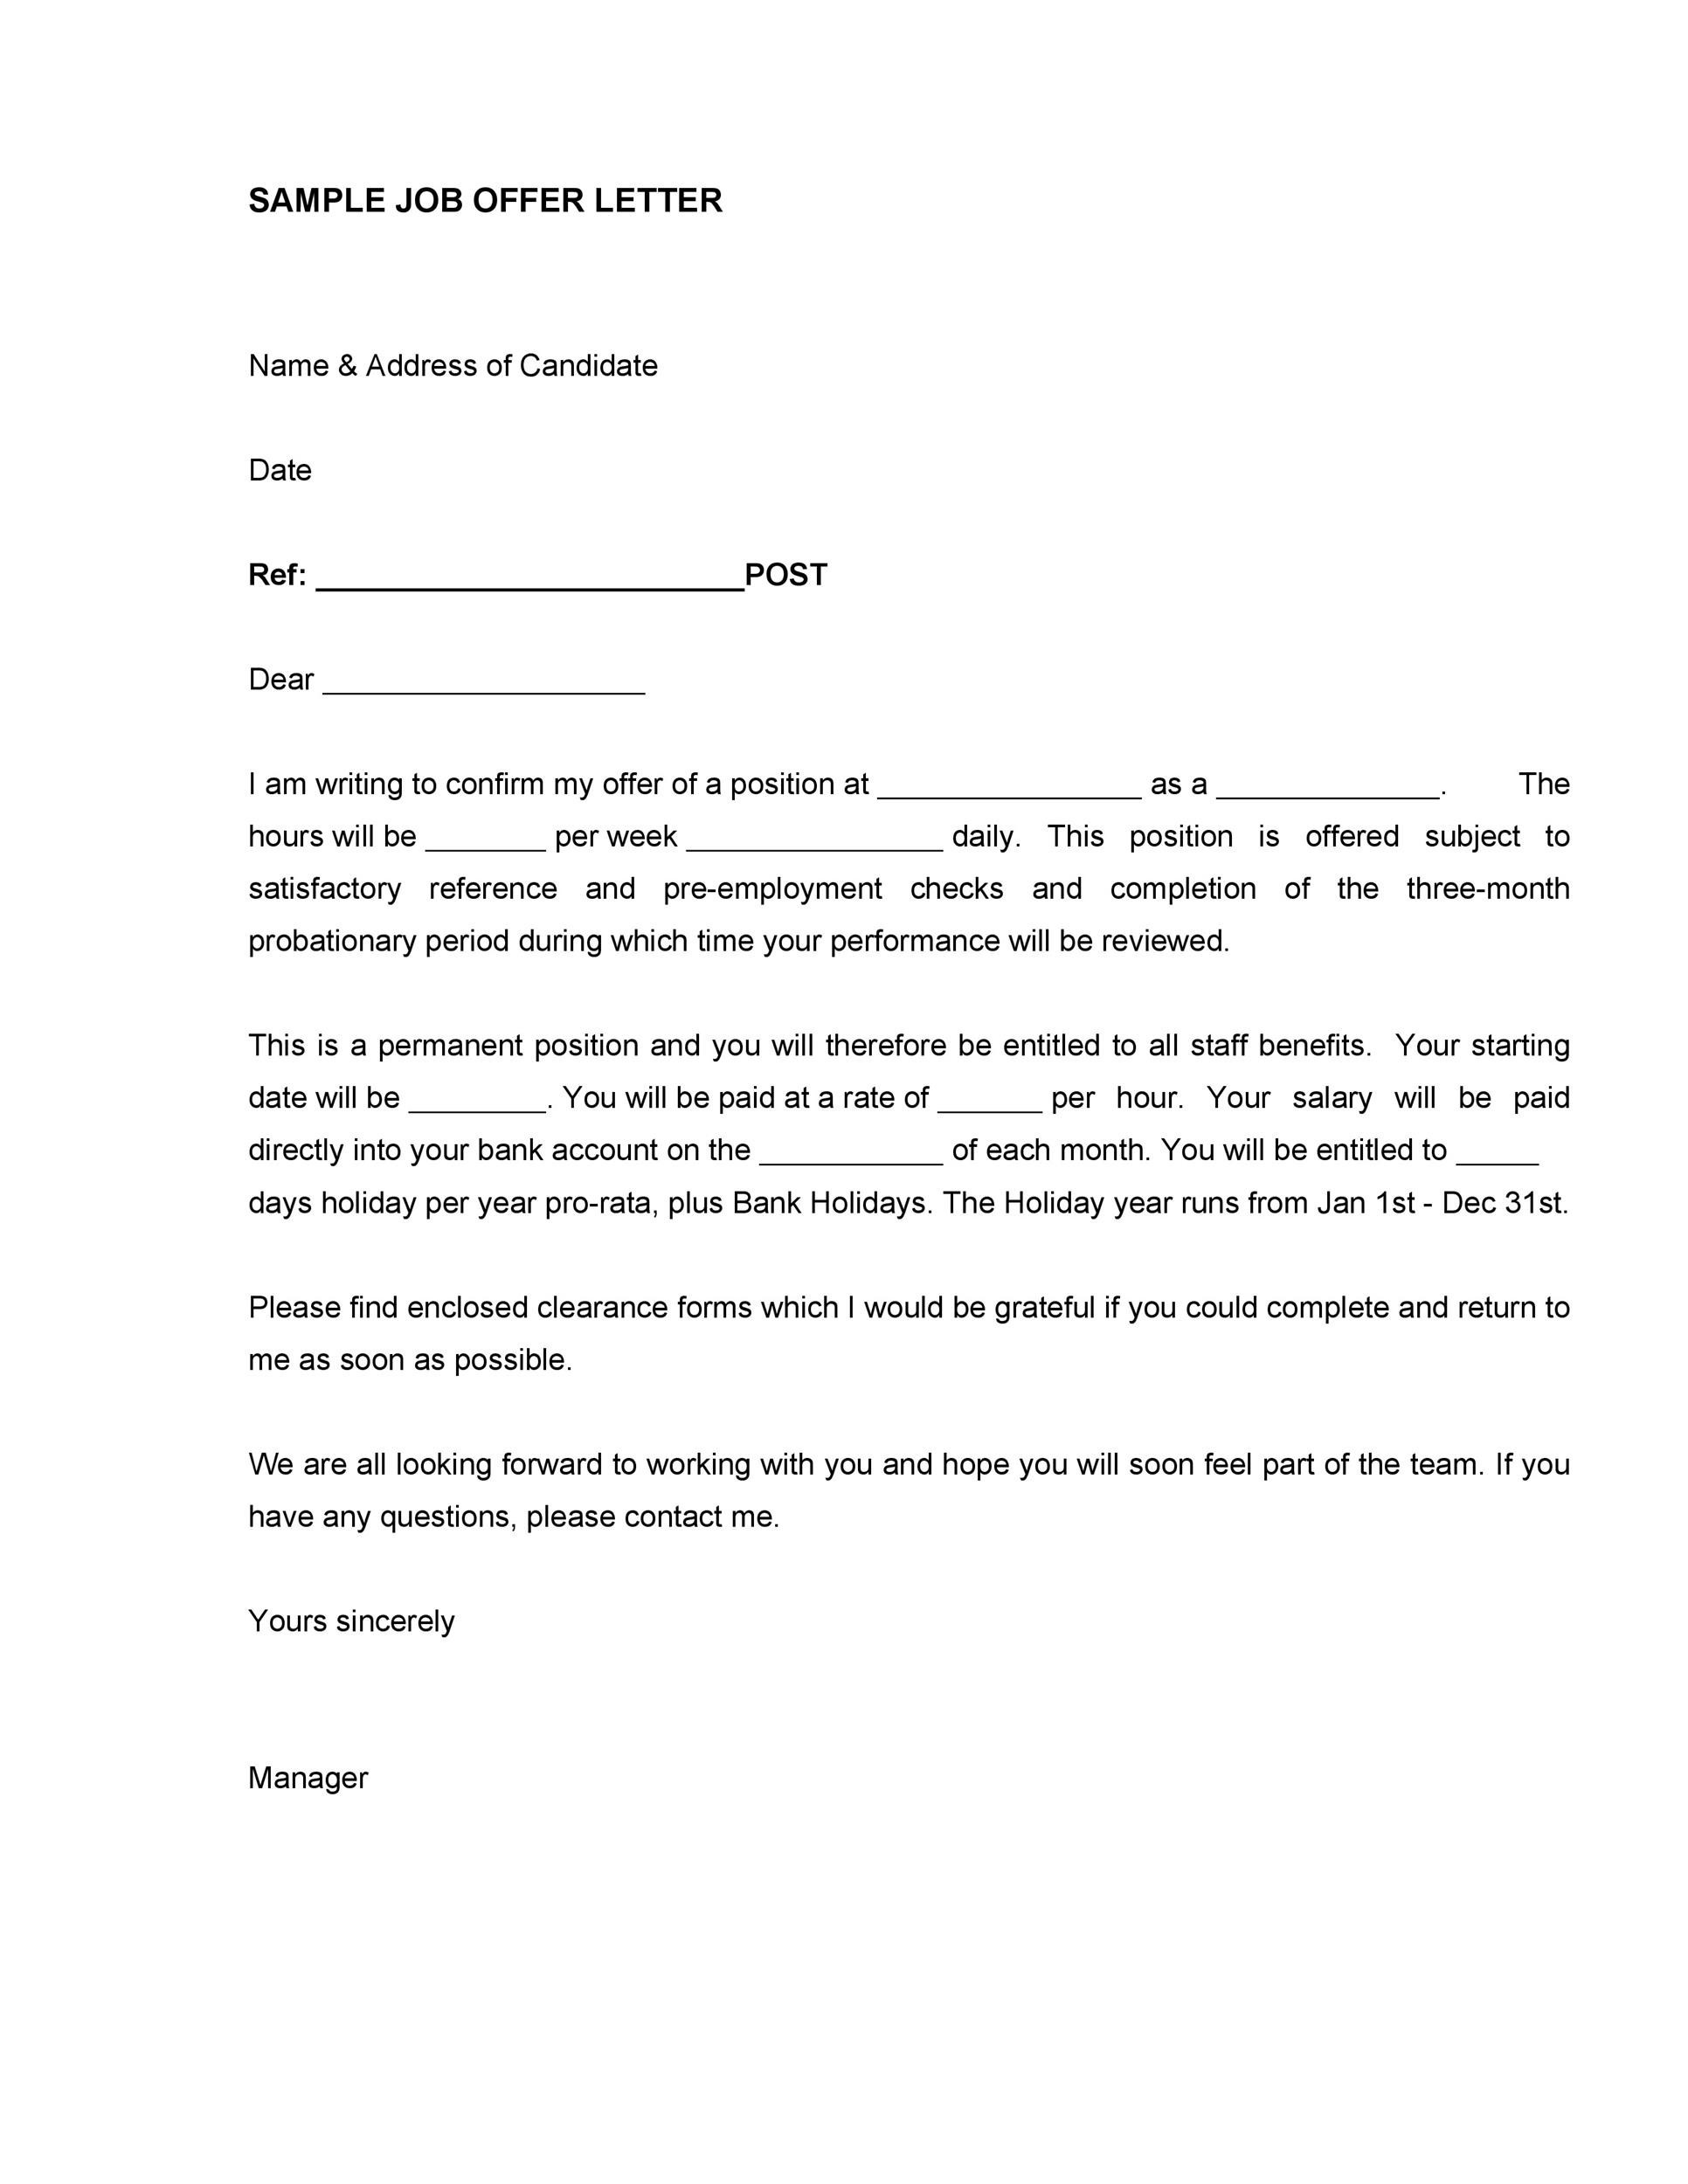 44 fantastic offer letter templates employment counter offer job offer letter 23